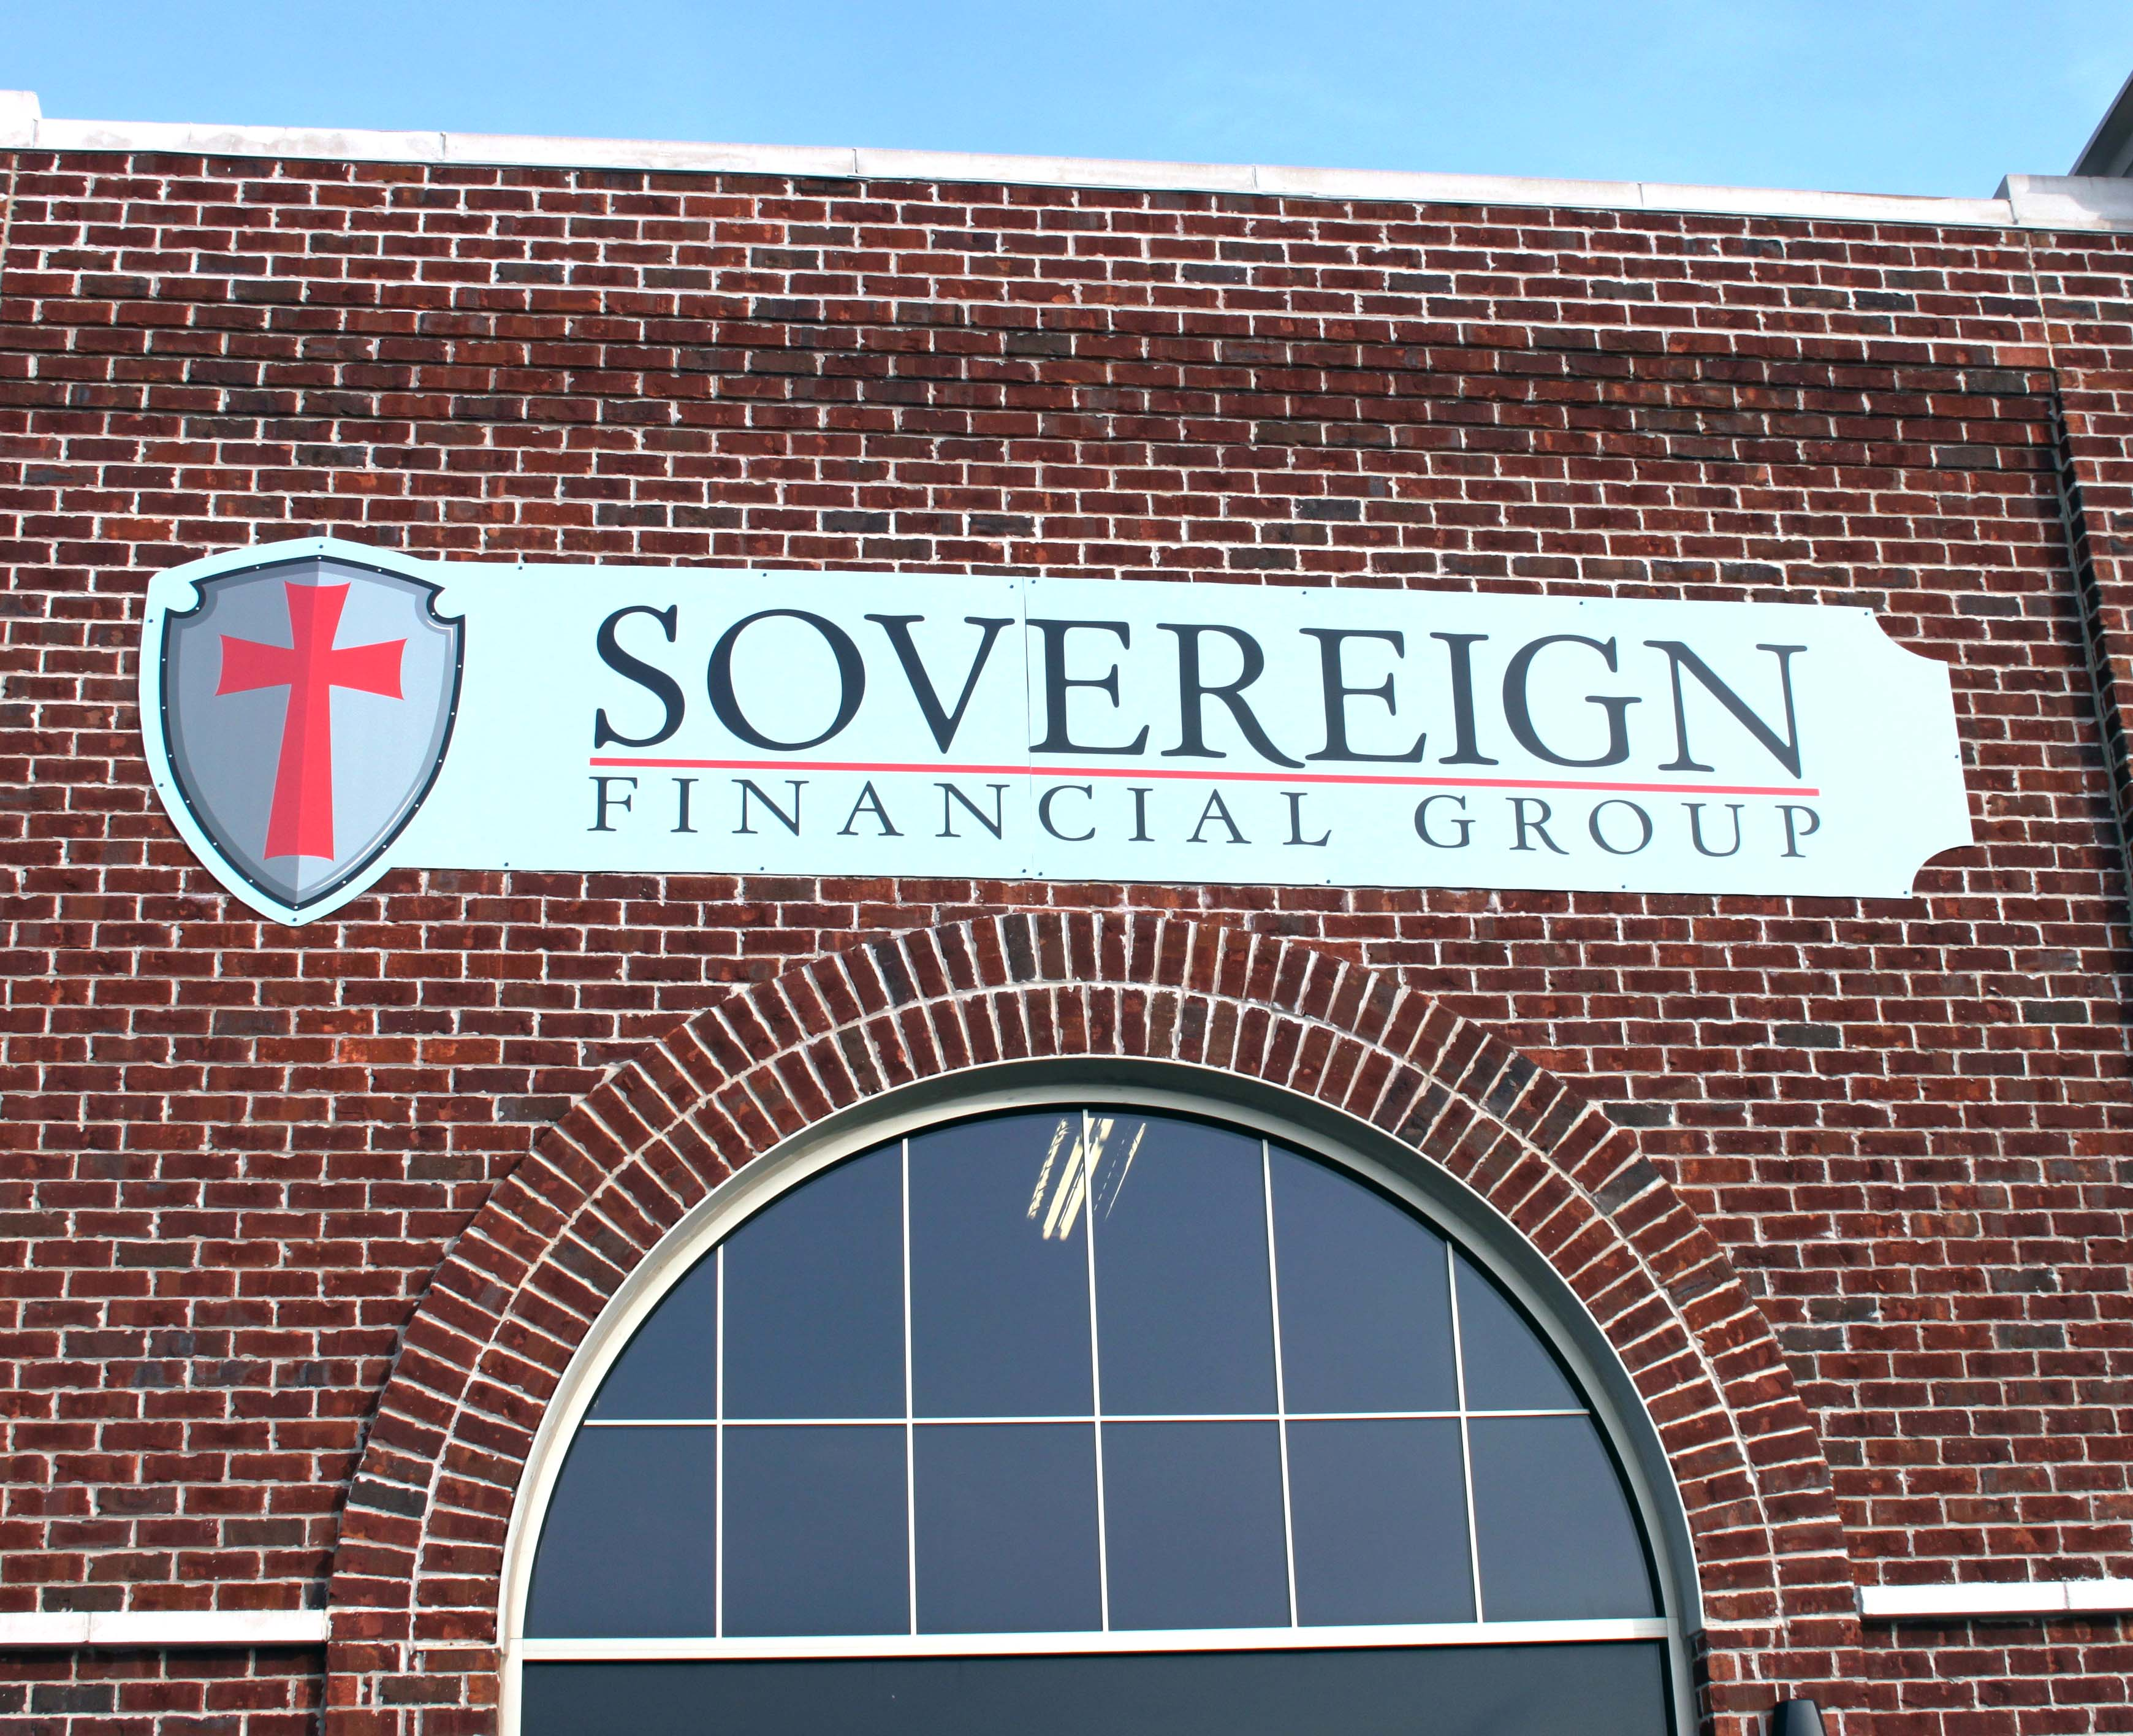 SOVEREIGN FINANCIAL GROUP